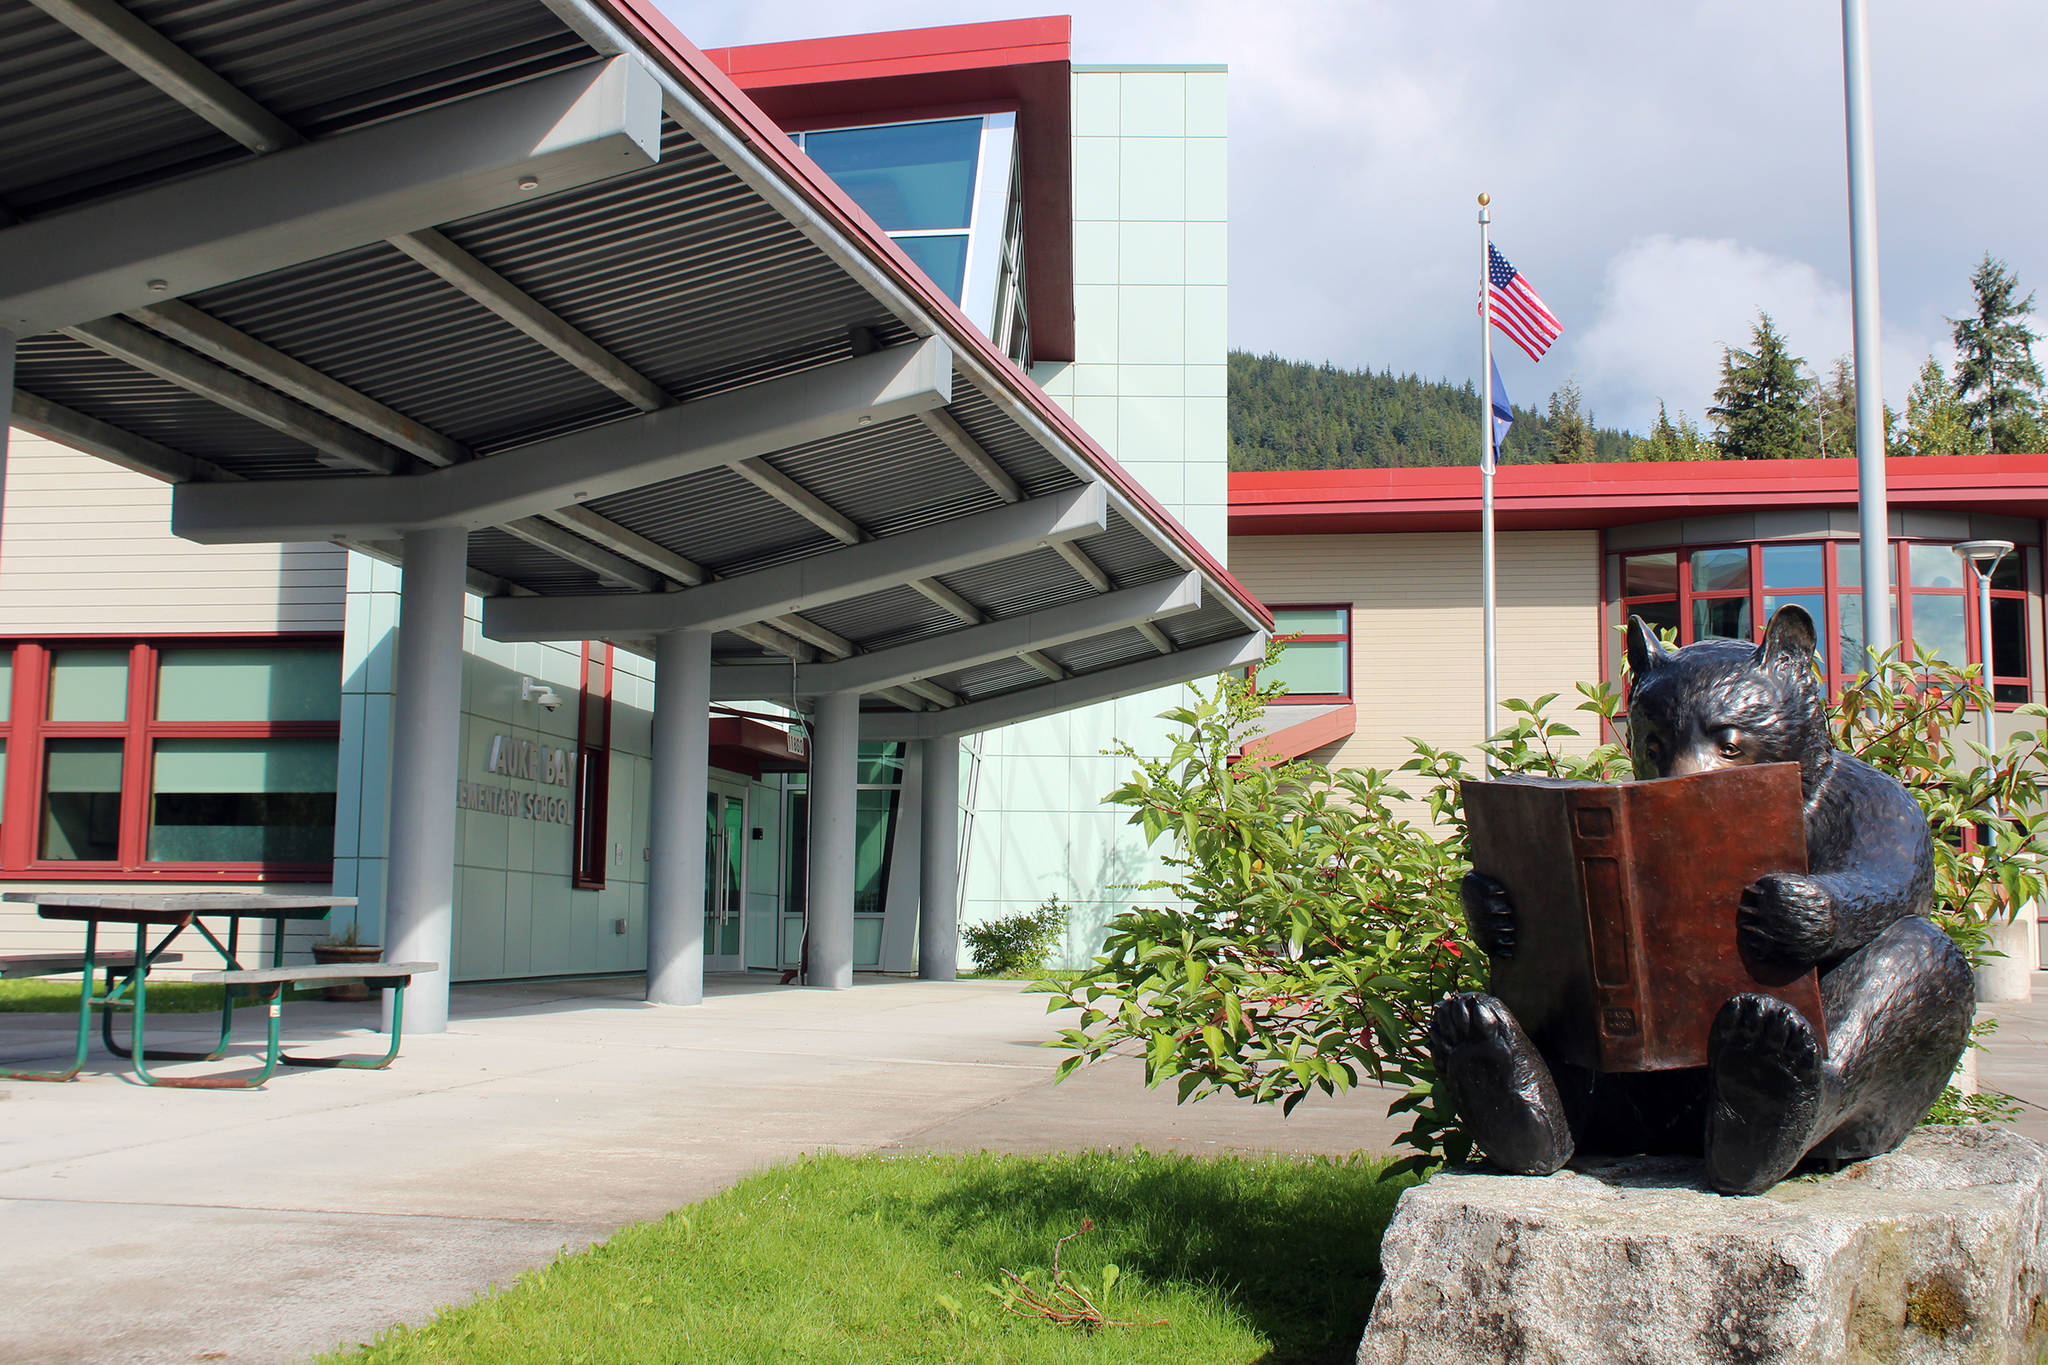 New principals will take the helm at Auke Bay and Harborview elementary schools next school year. A committee interviewed five candidates for the roles this week. School officials plan to name the new principals soon. (Ben Hohenstatt / Juneau Empire File)